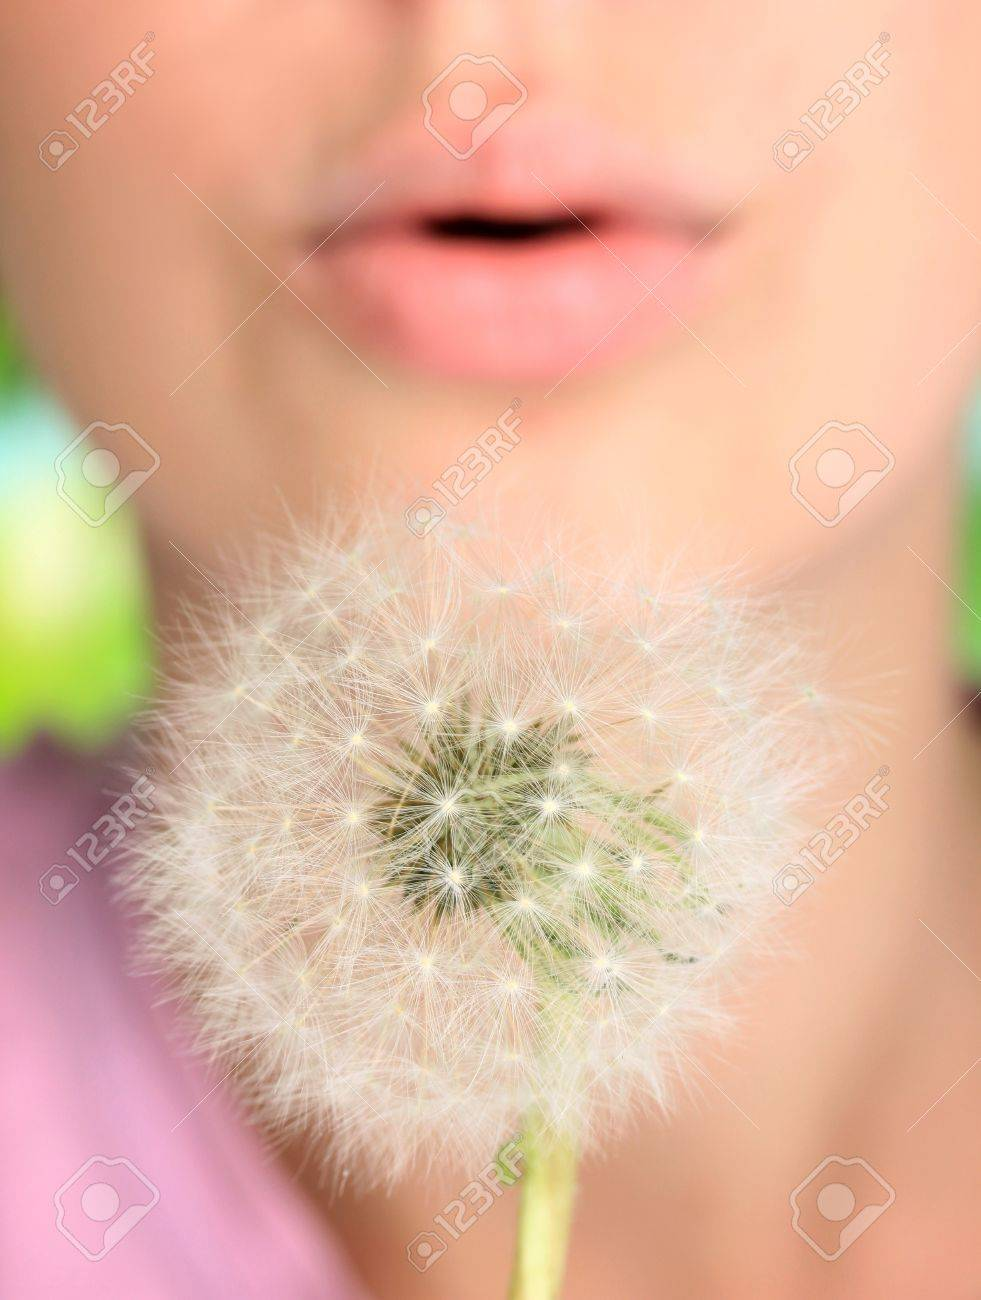 Girl blowing on dandelion close up Stock Photo - 20125021